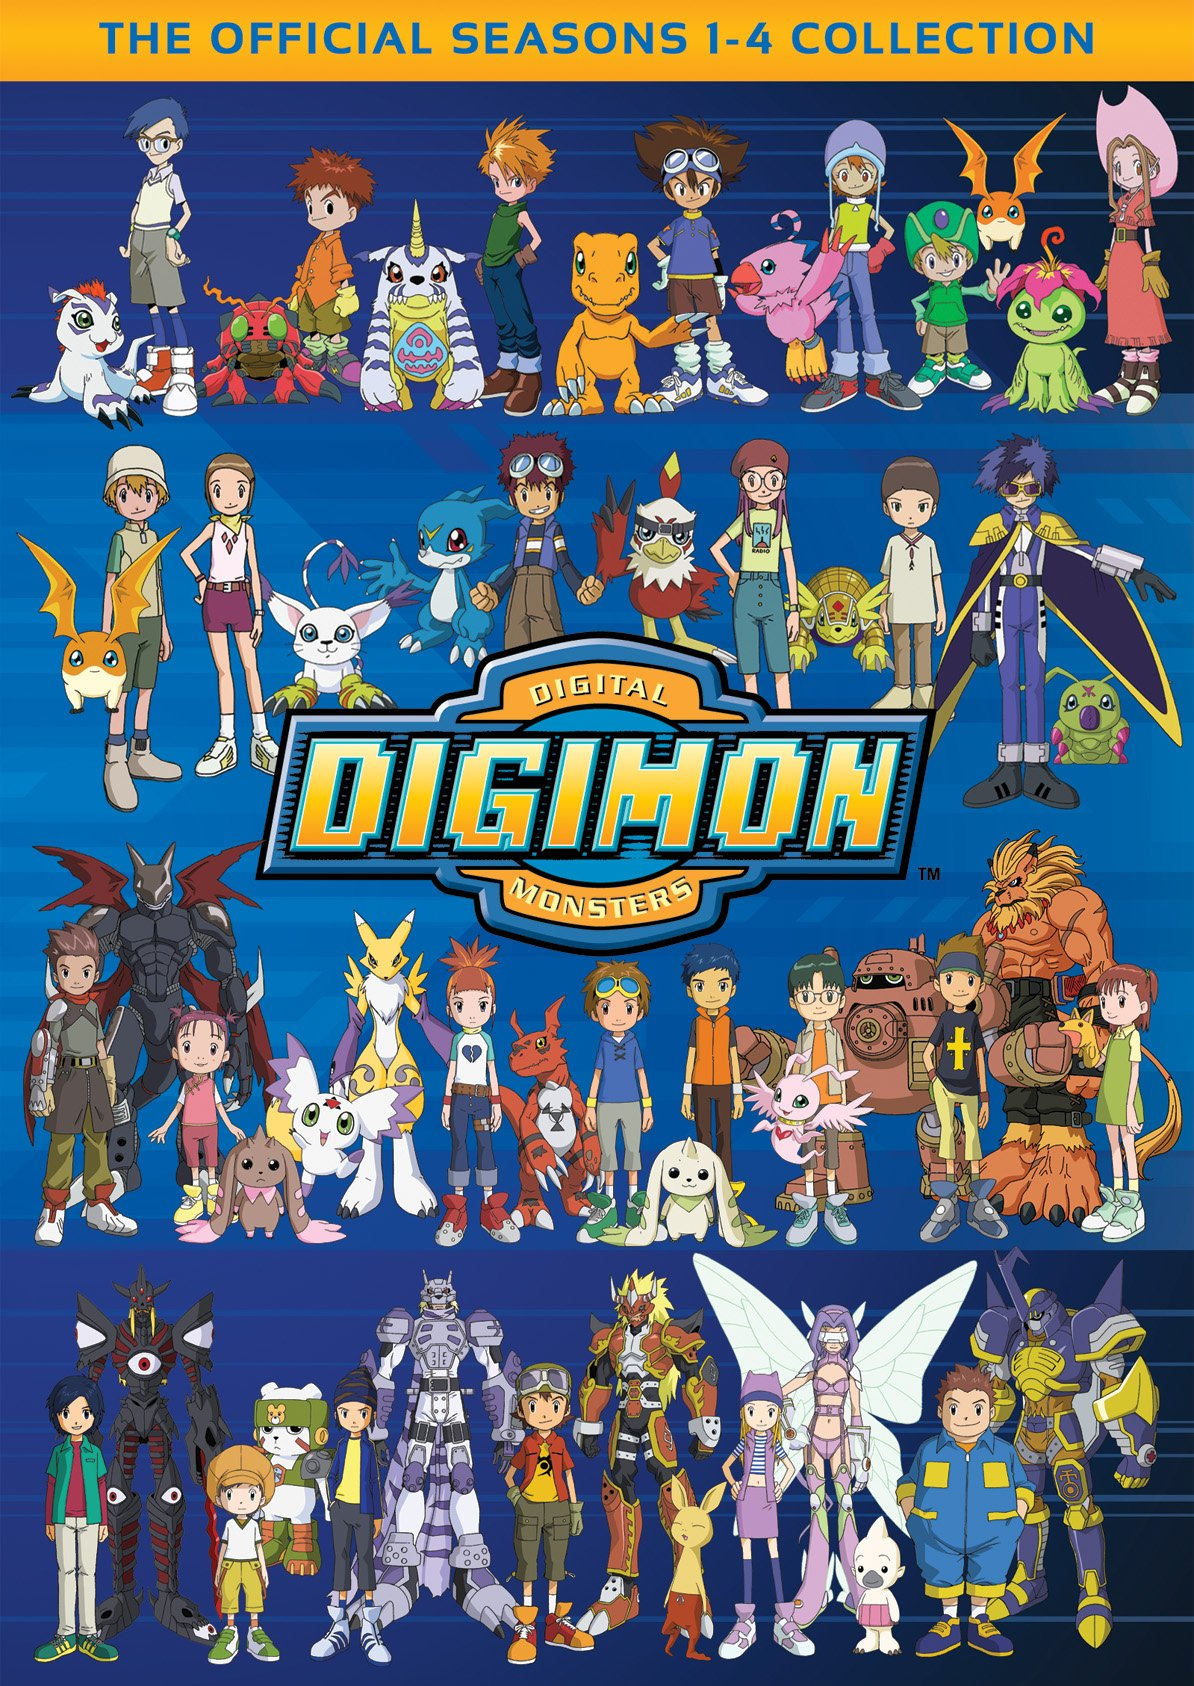 Digimon: The Official Seasons 1-4 Collection by NEW VIDEO GROUP